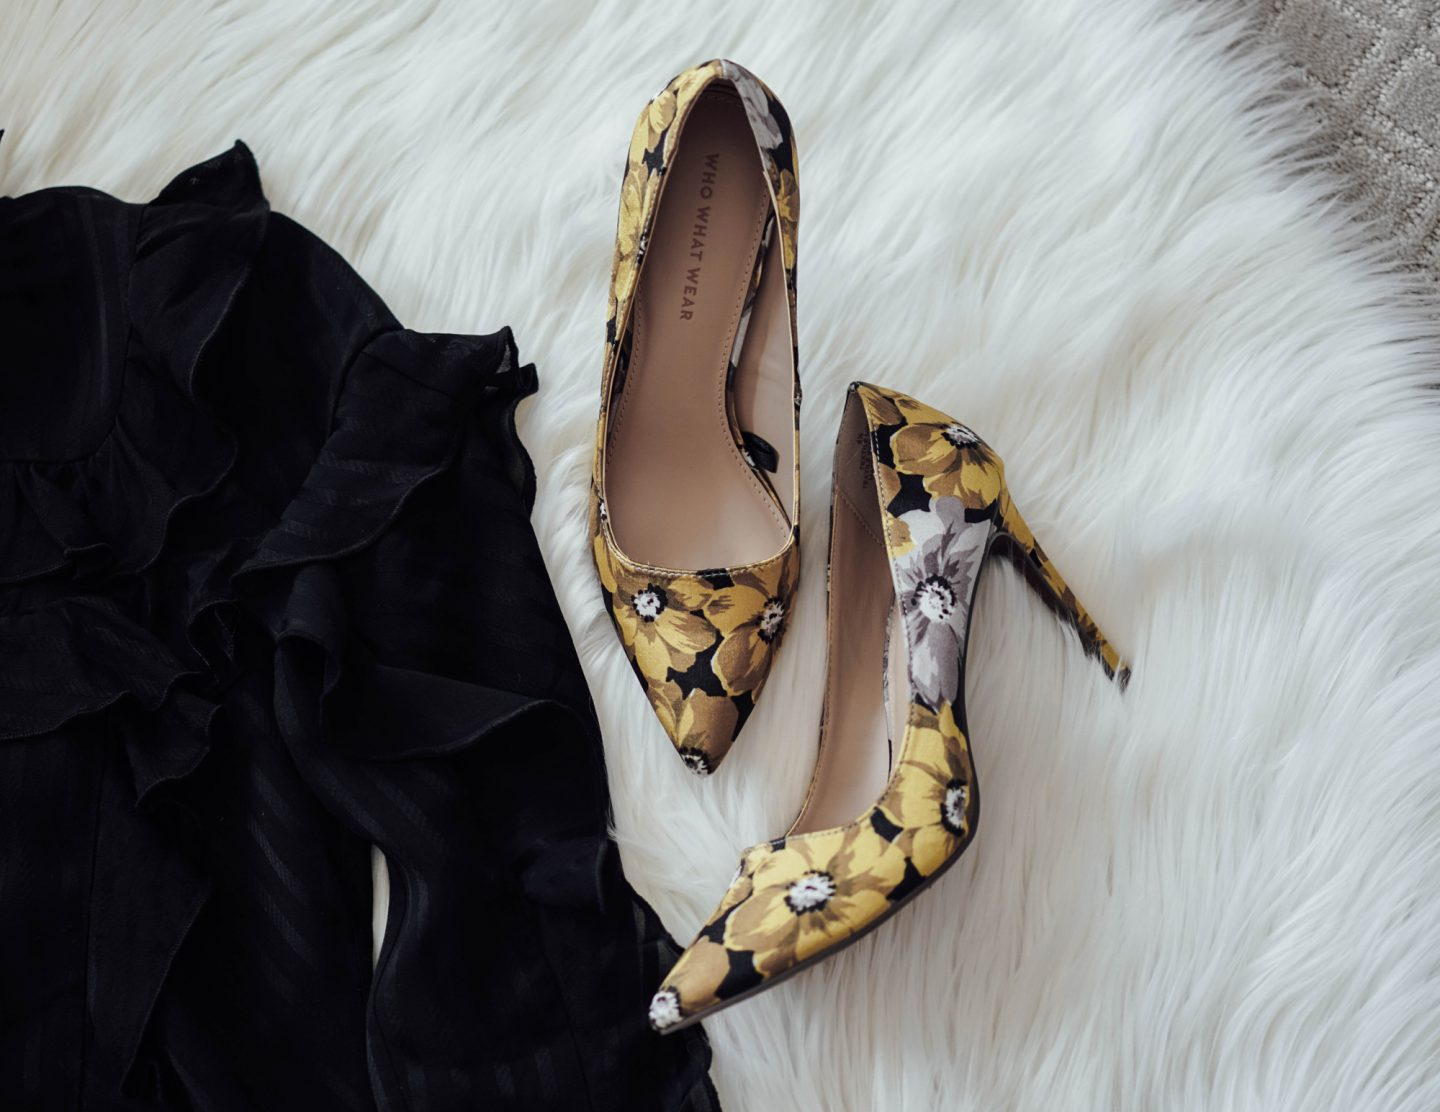 I'm sharing my favorite pieces from Who What Wear's Spring 2017 Collection for Target, including these yellow floral printed pumps. Head over to TheDandyLiar.com to see the rest of my favorites from the collections.